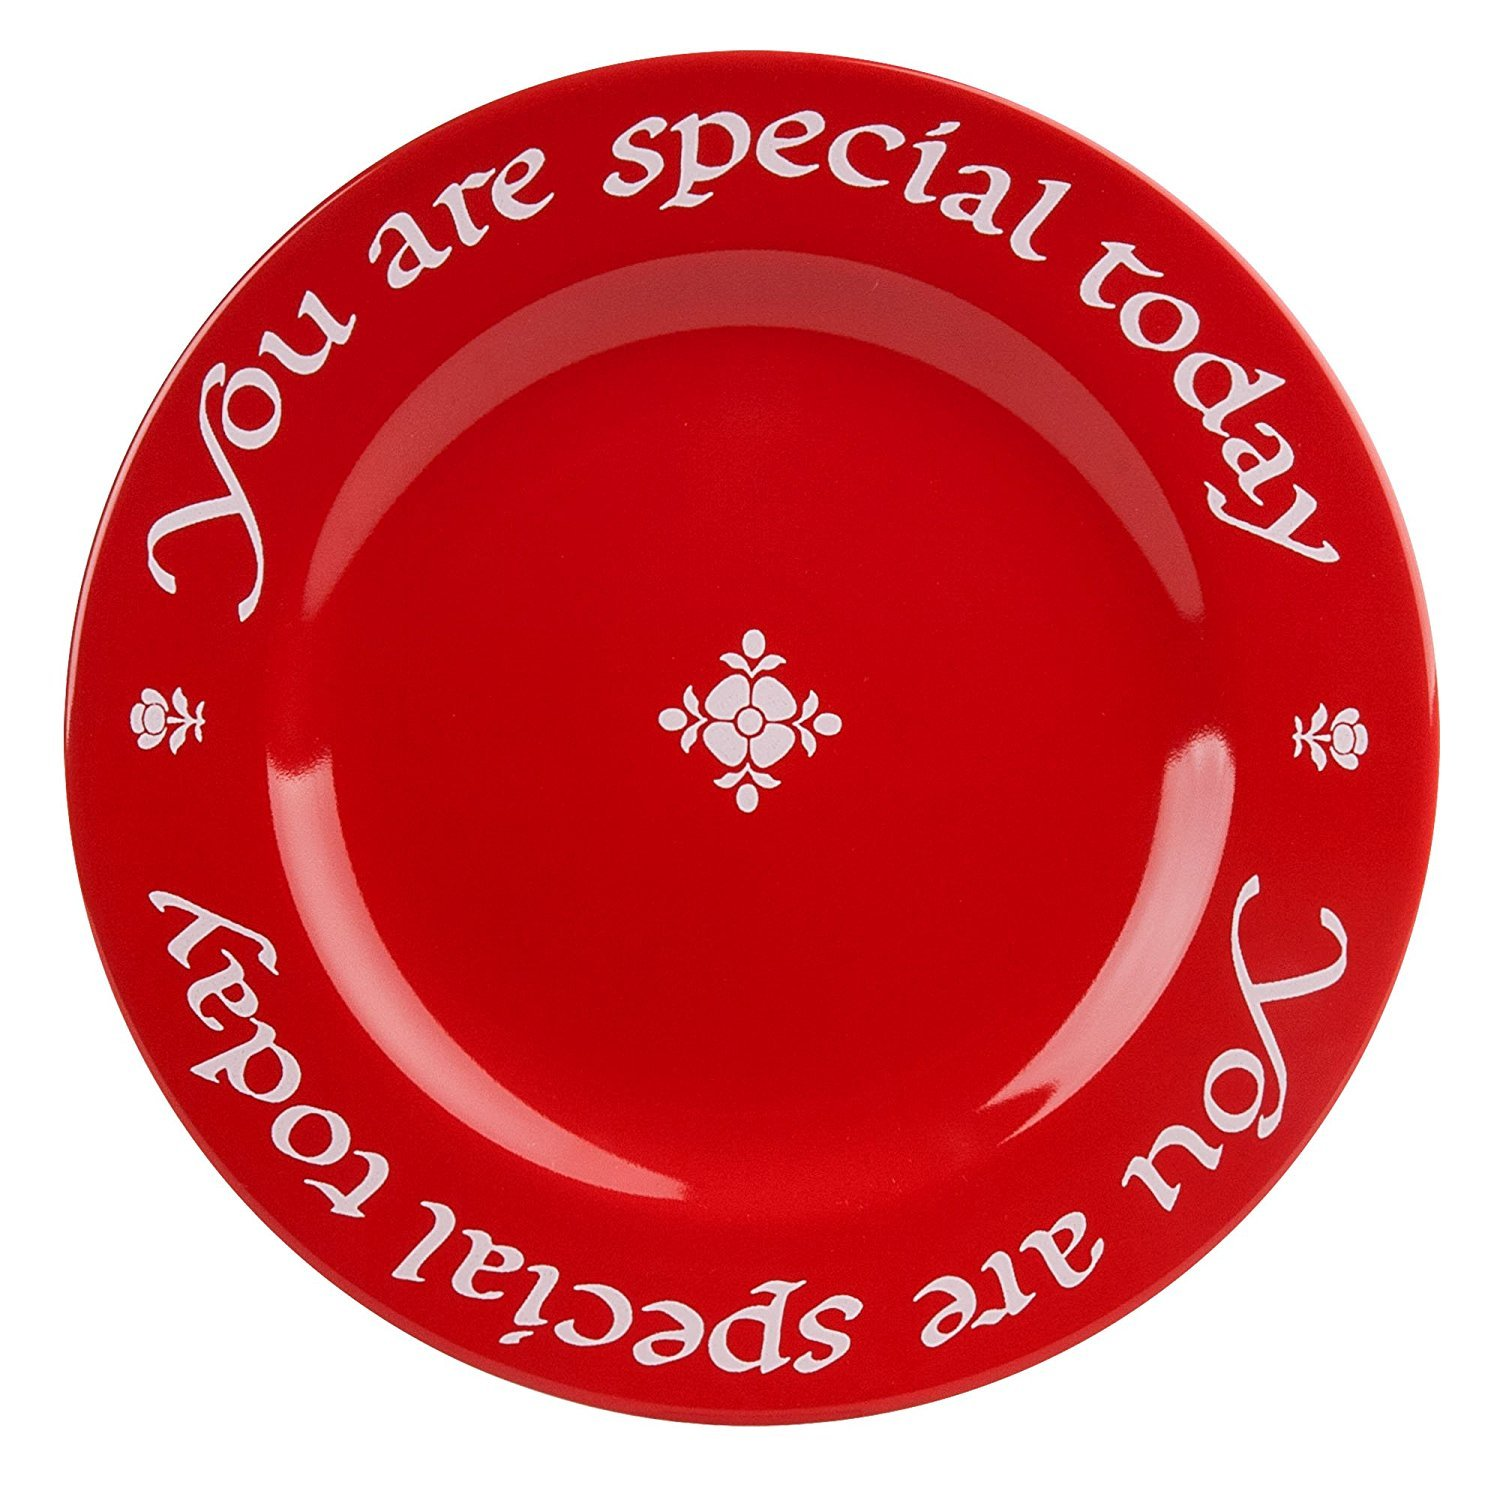 Waechtersbach 4251271903 Special Today Plates, Giftboxed, Set of 2, Red